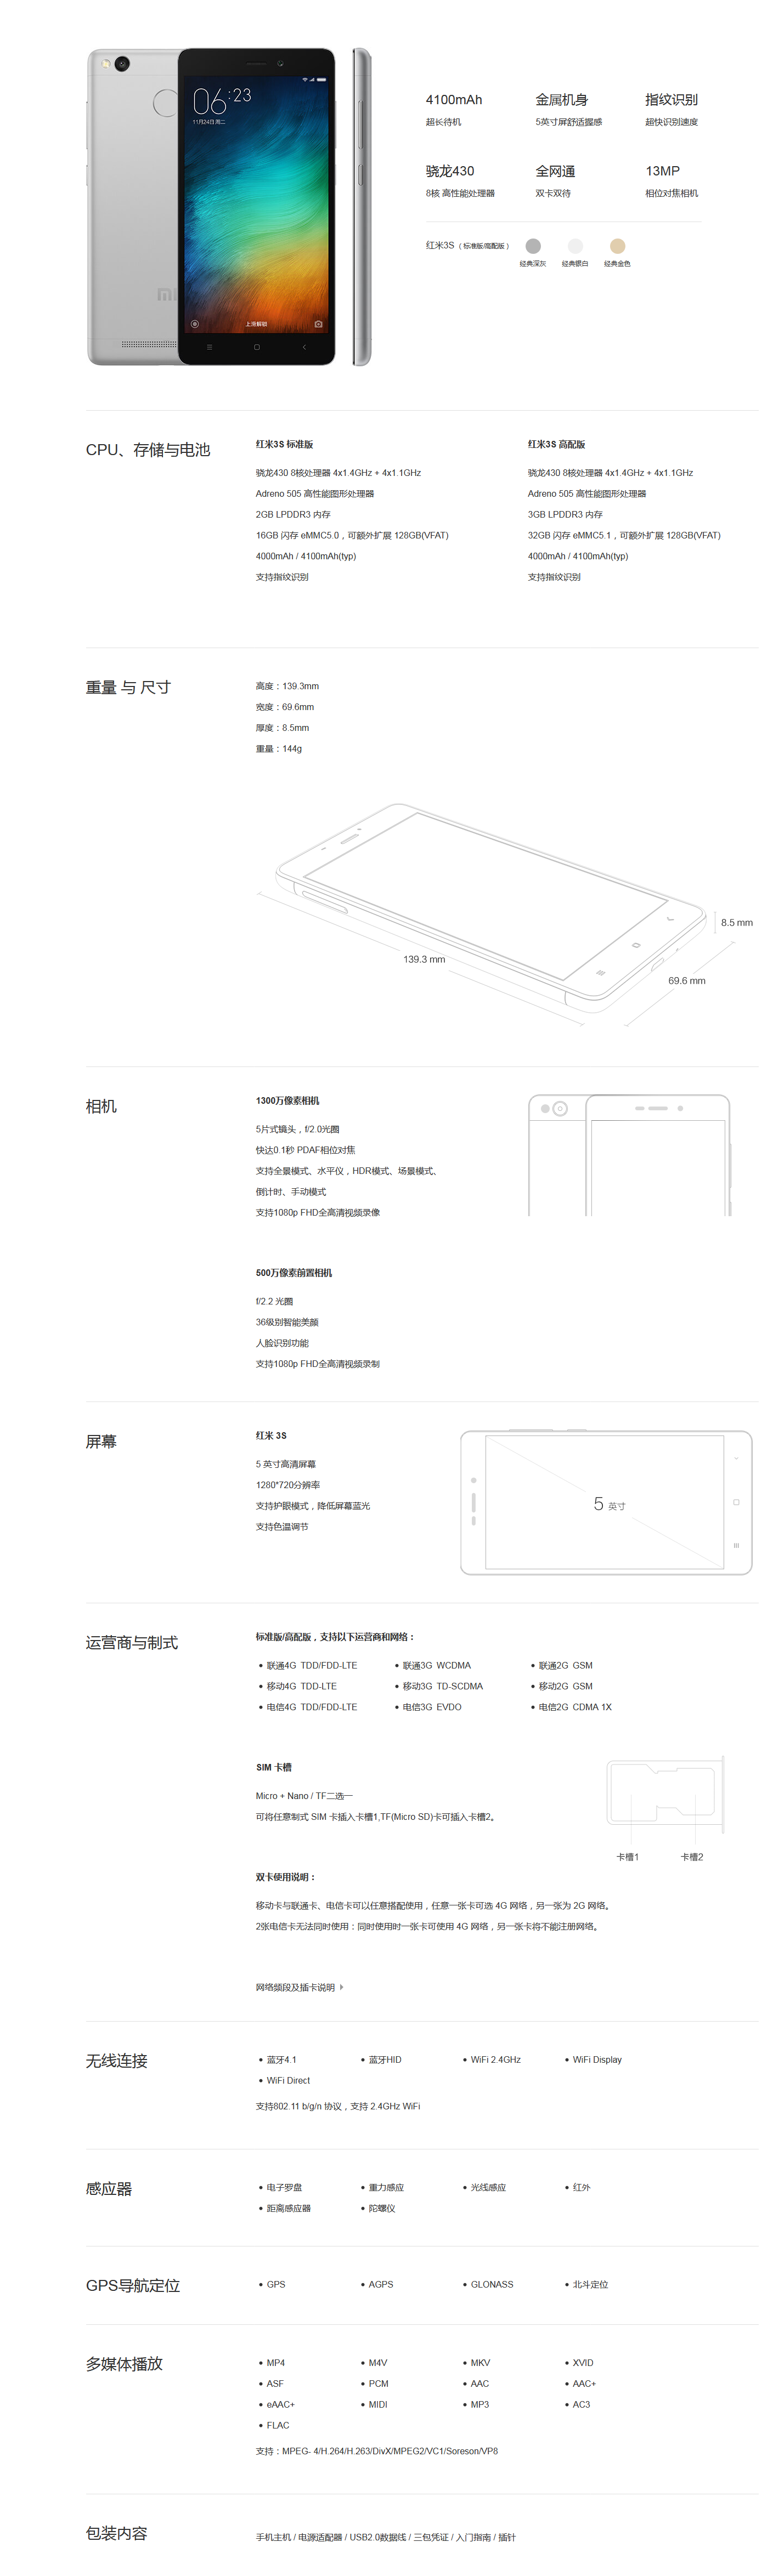 Details about Xiaomi Redmi 3S HD 5 0